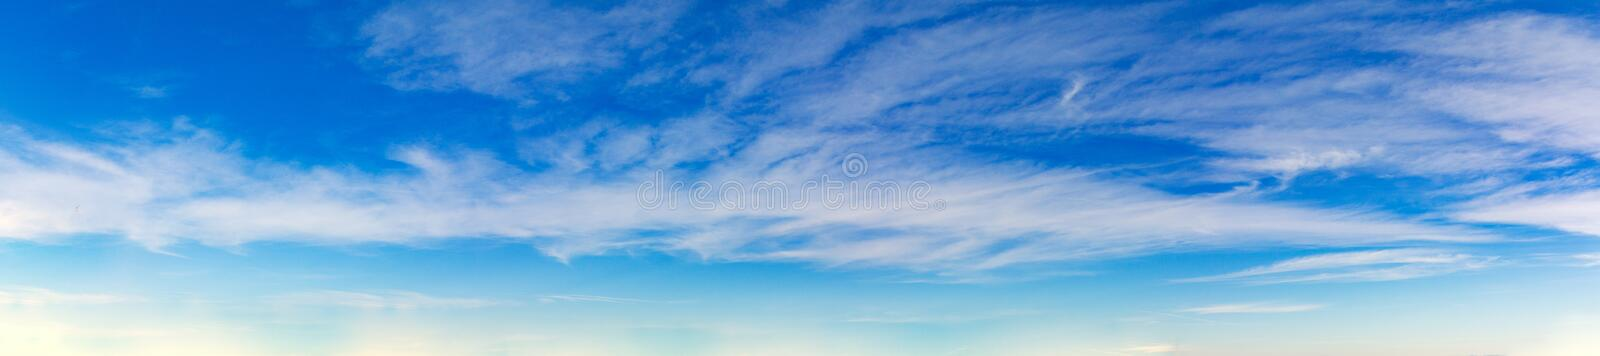 Vibrant color panoramic sky with cloud on a sunny day. Beautiful cirrus cloud. Panorama high resolution photograph royalty free stock photo